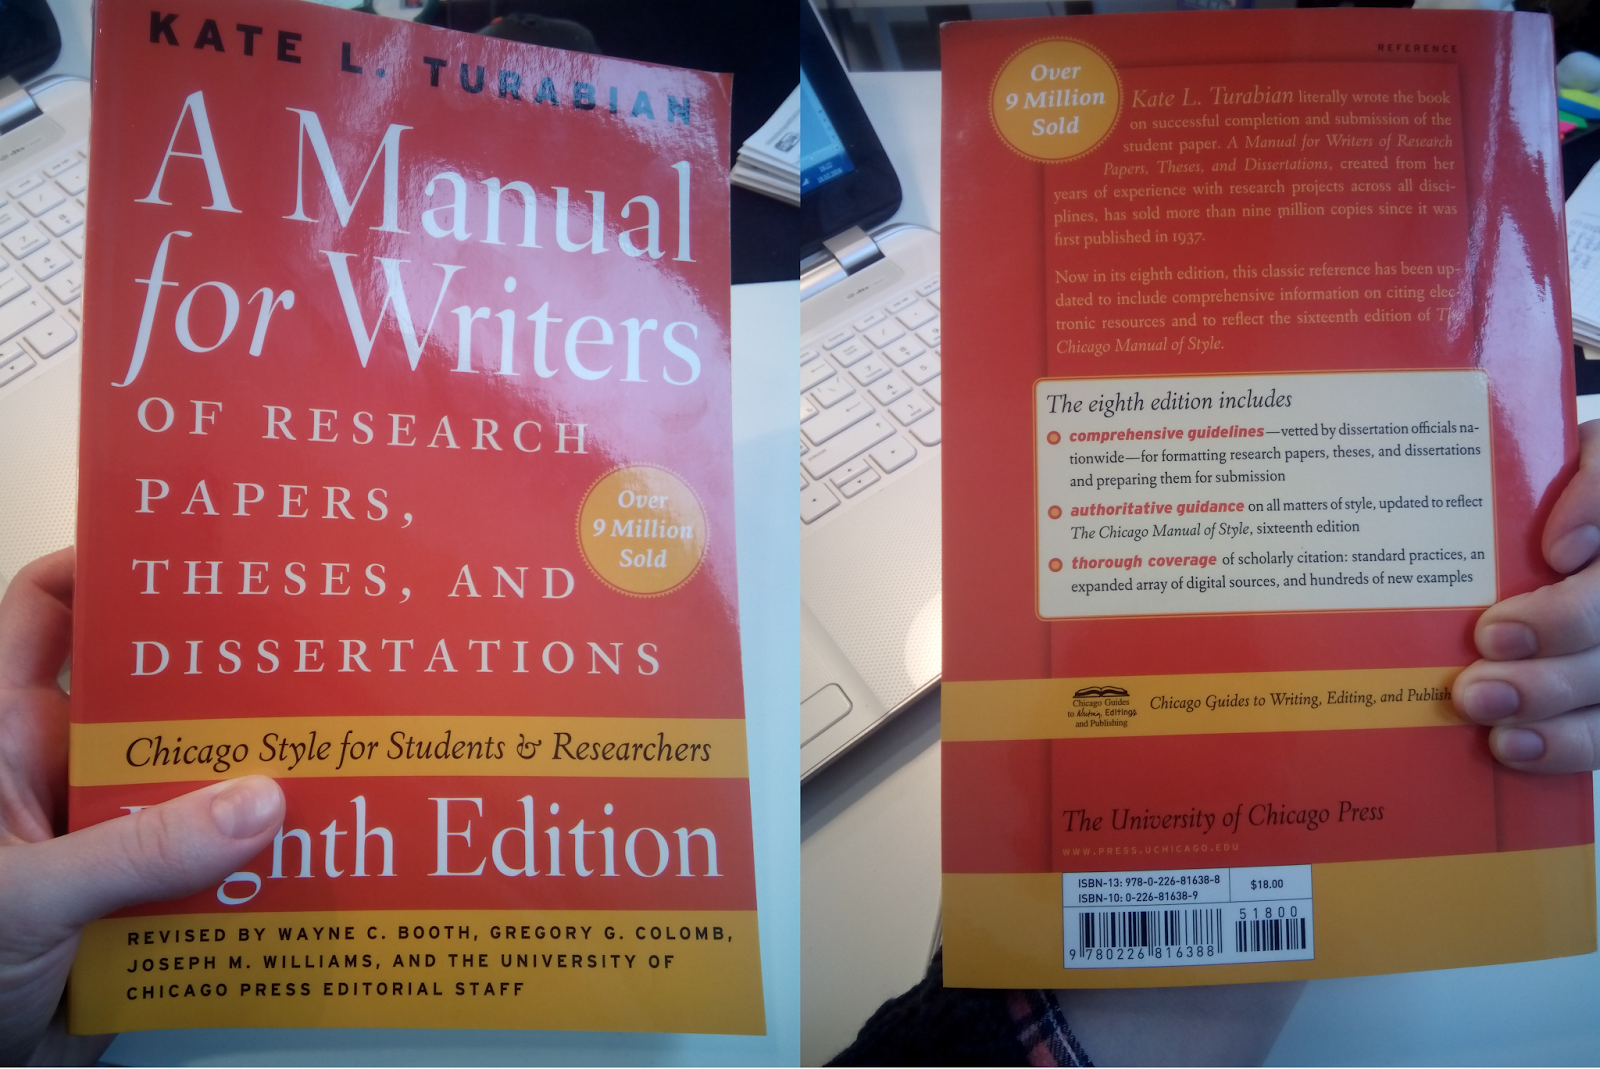 022 Manual For Writers Of Research Papers Theses And Dissertations Paper Sensational A 8th Edition Pdf Eighth Full